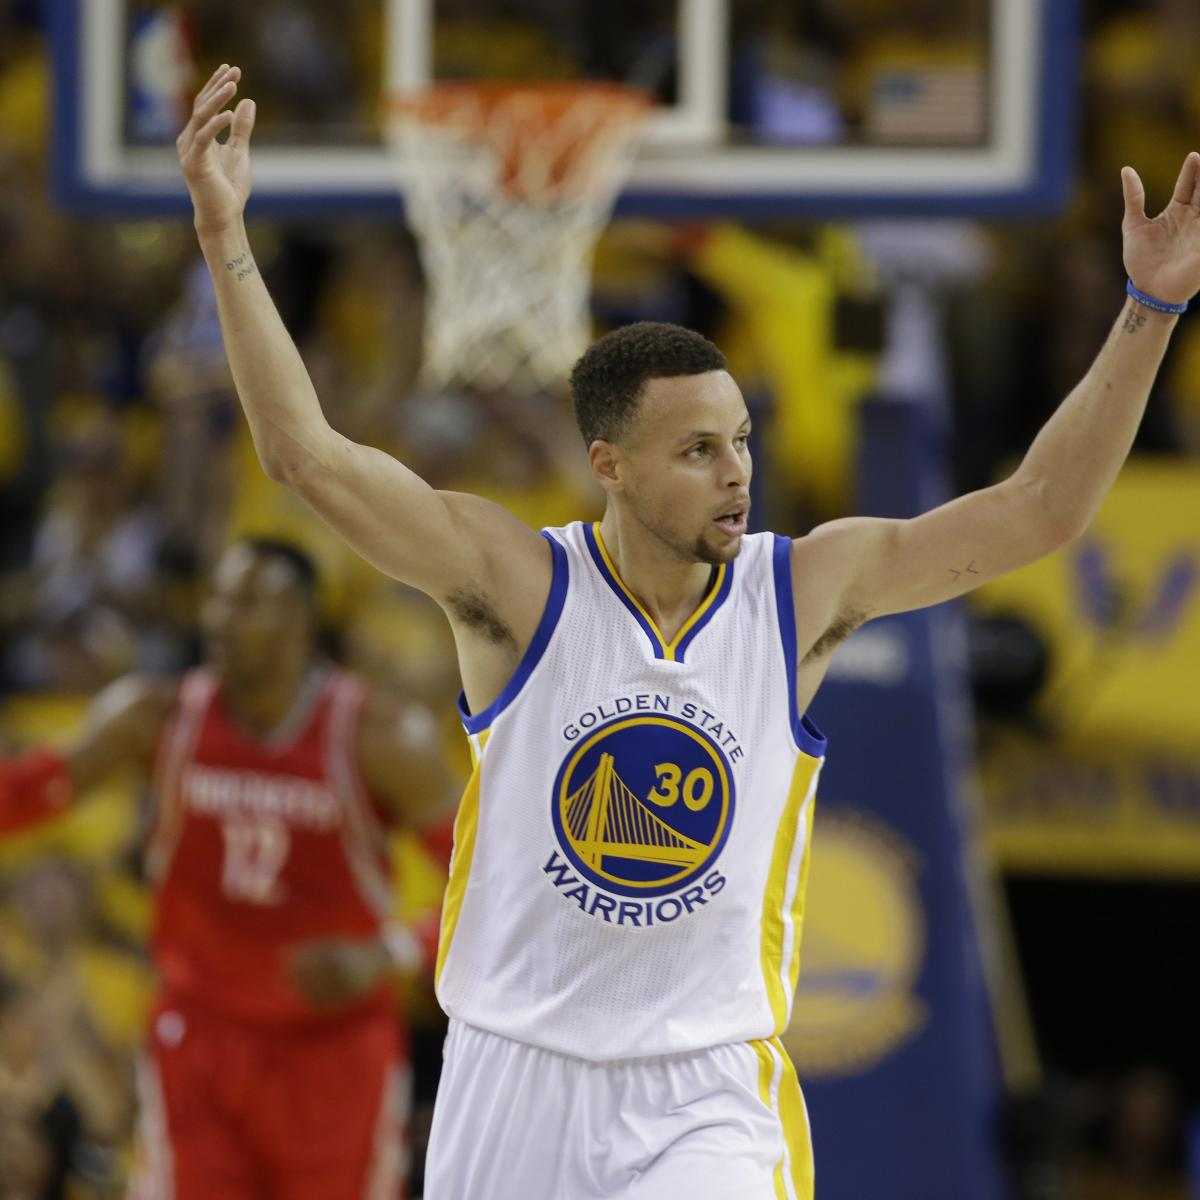 Warriors Movie Clips: Stephen Curry Injury: Updates On Warriors Star's Knee And